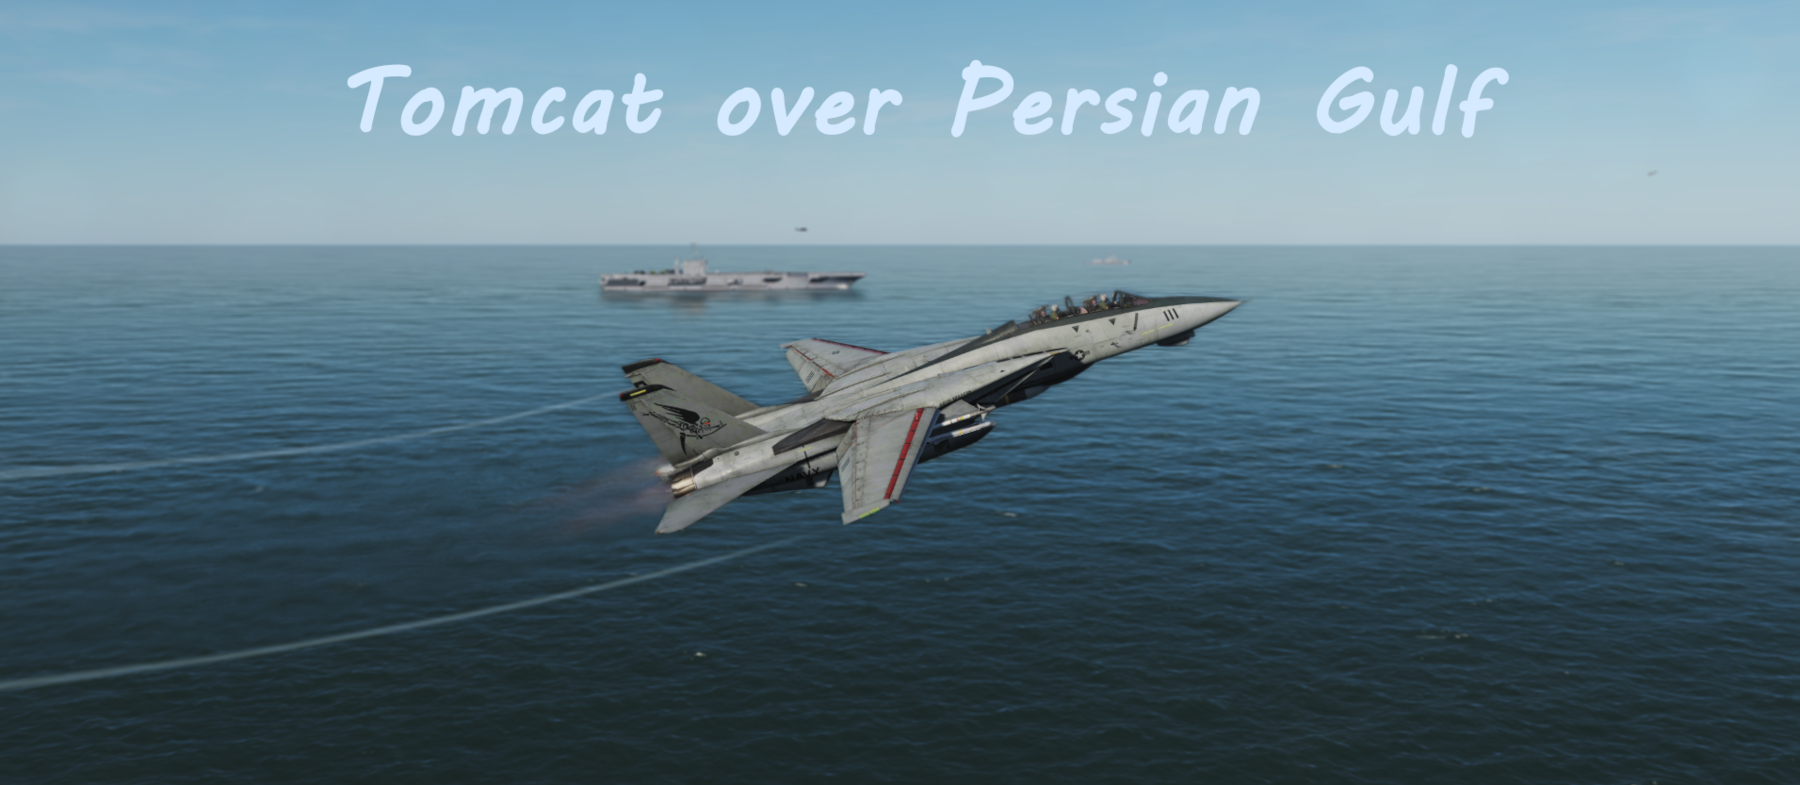 Tomcat over Persian Gulf using Mbot Dynamic Campaign Engine